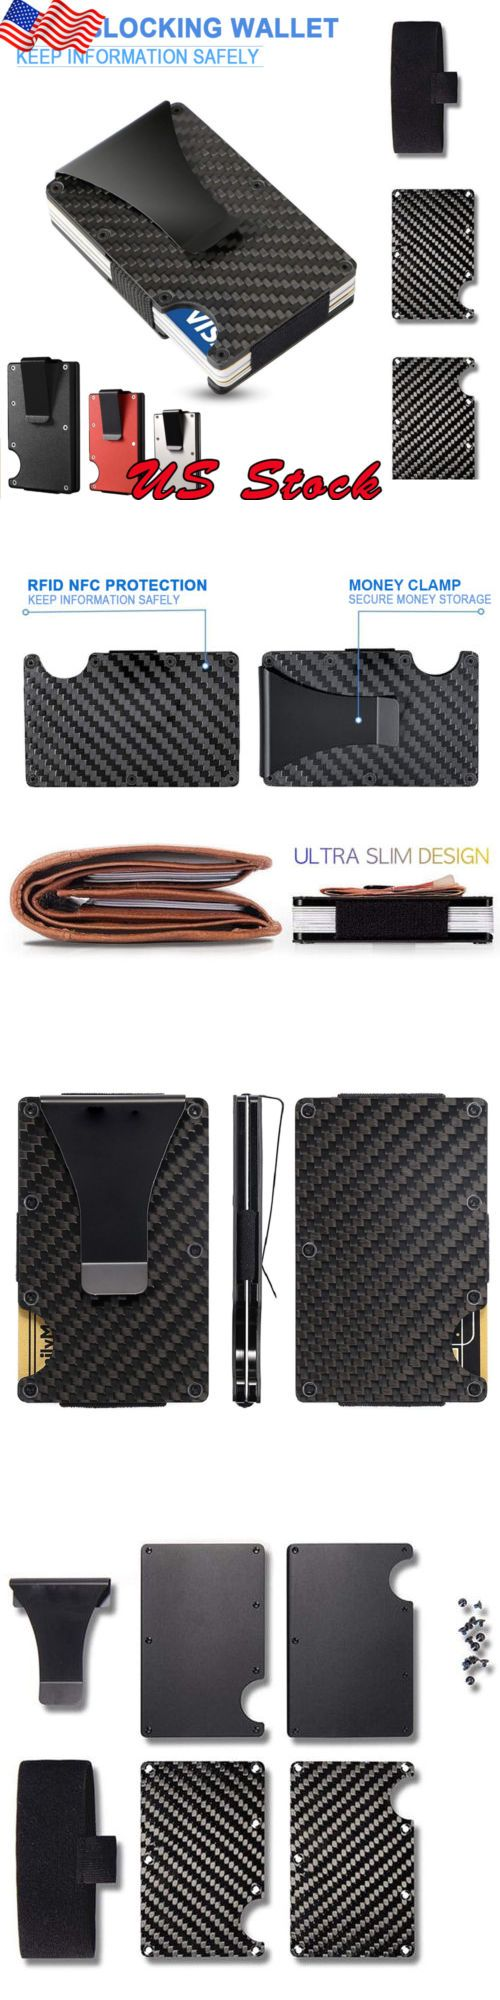 aca1631d740 Mens Accessories 4250  Slim Carbon Fiber Id Credit Card Holder Blocking  Metal Wallet Money Clip Purse -  BUY IT NOW ONLY   10.49 on  eBay   accessories ...